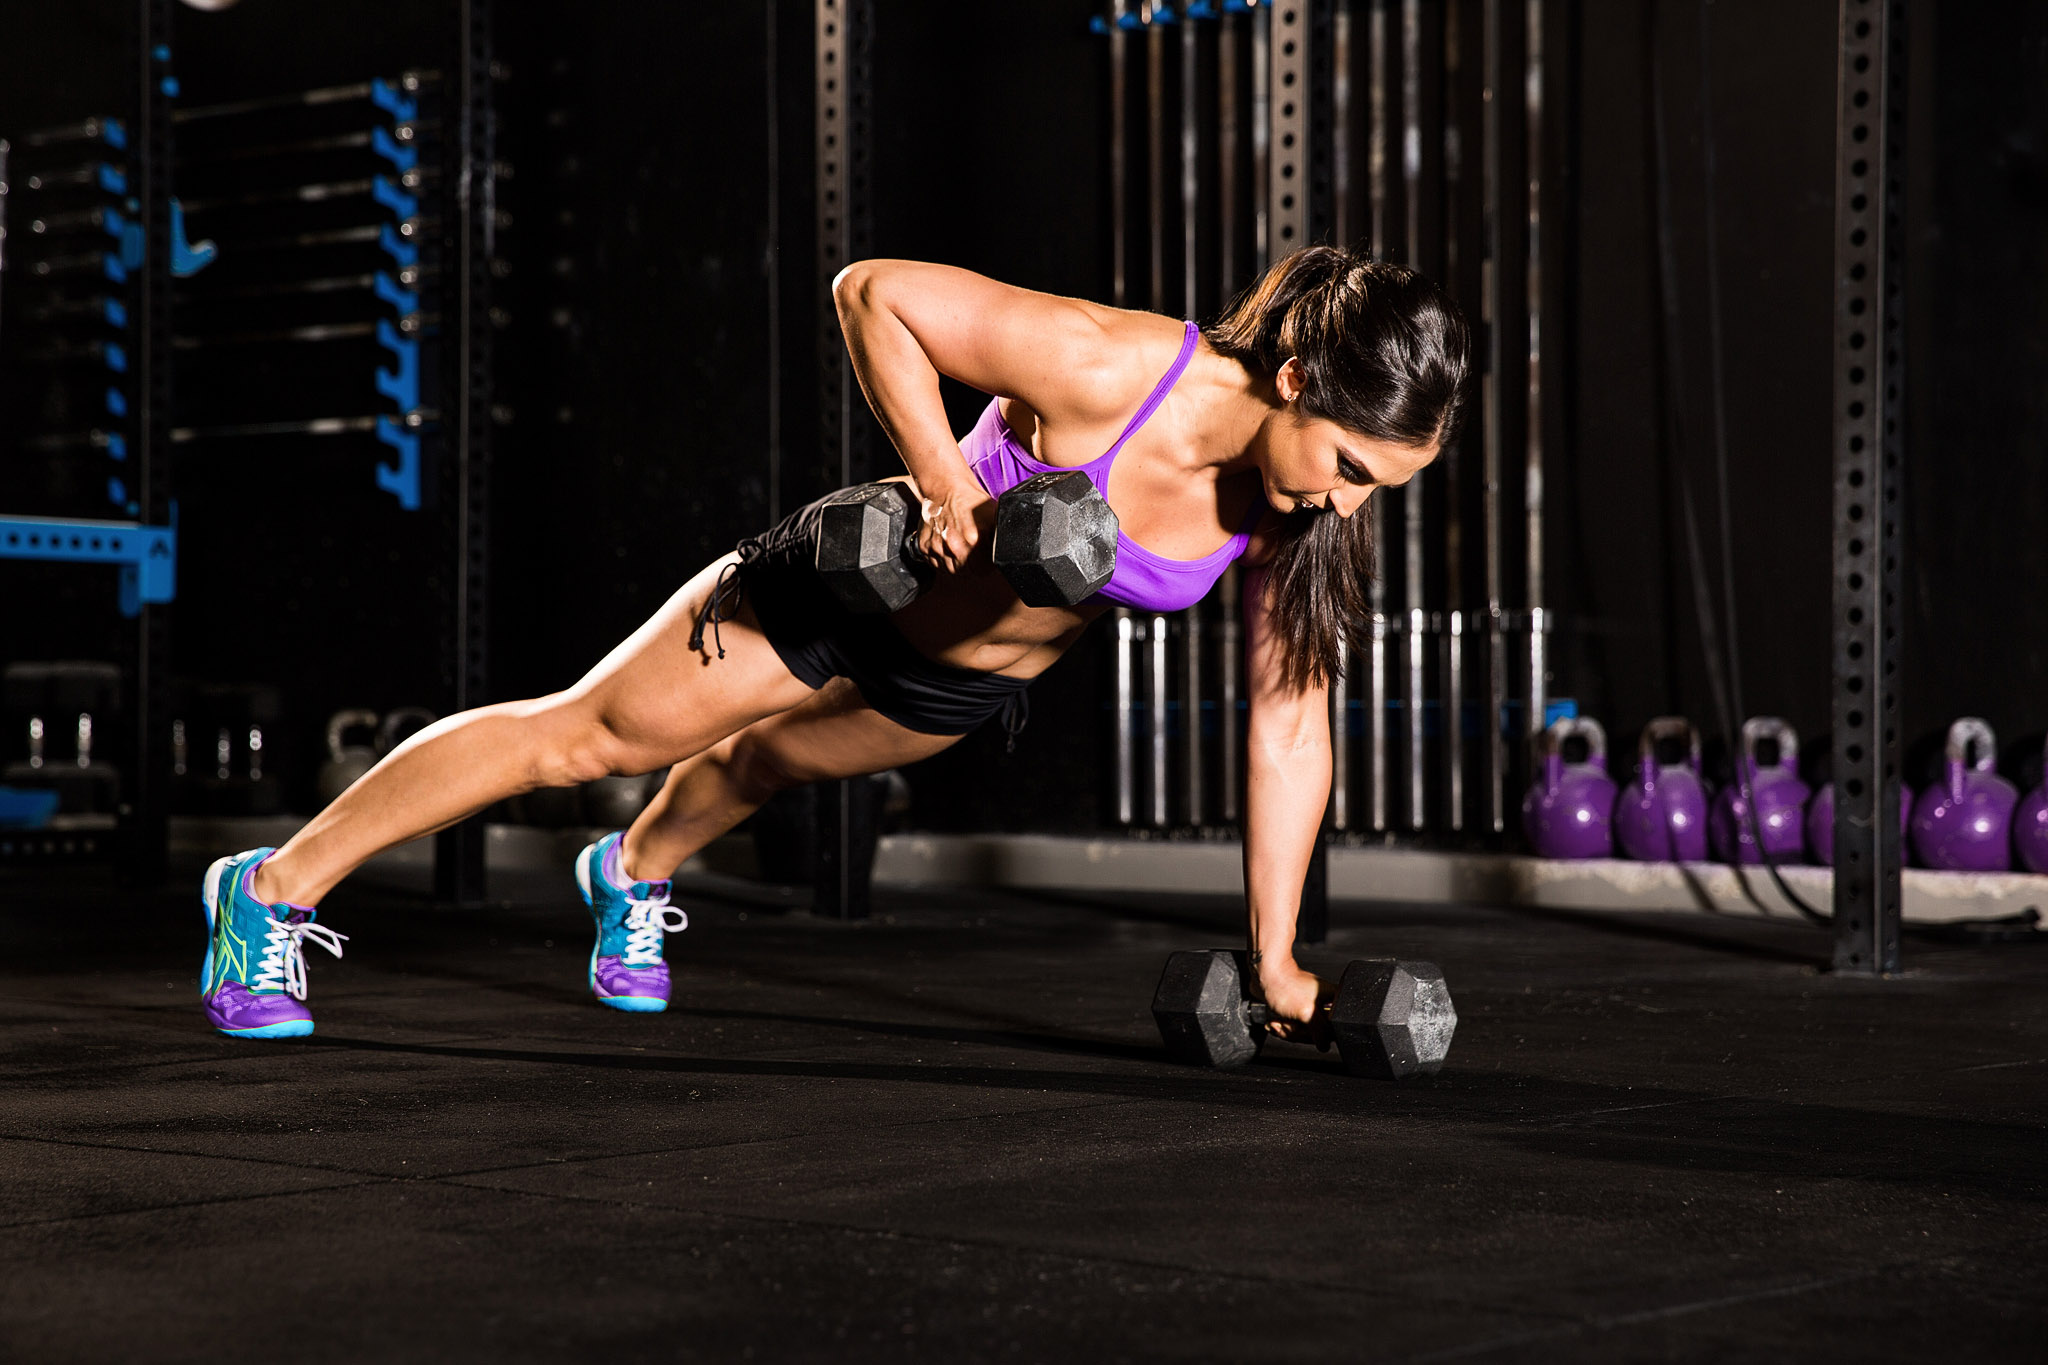 Photoshoot of Emma training at Reebok Crossfit Centre Gold Coast